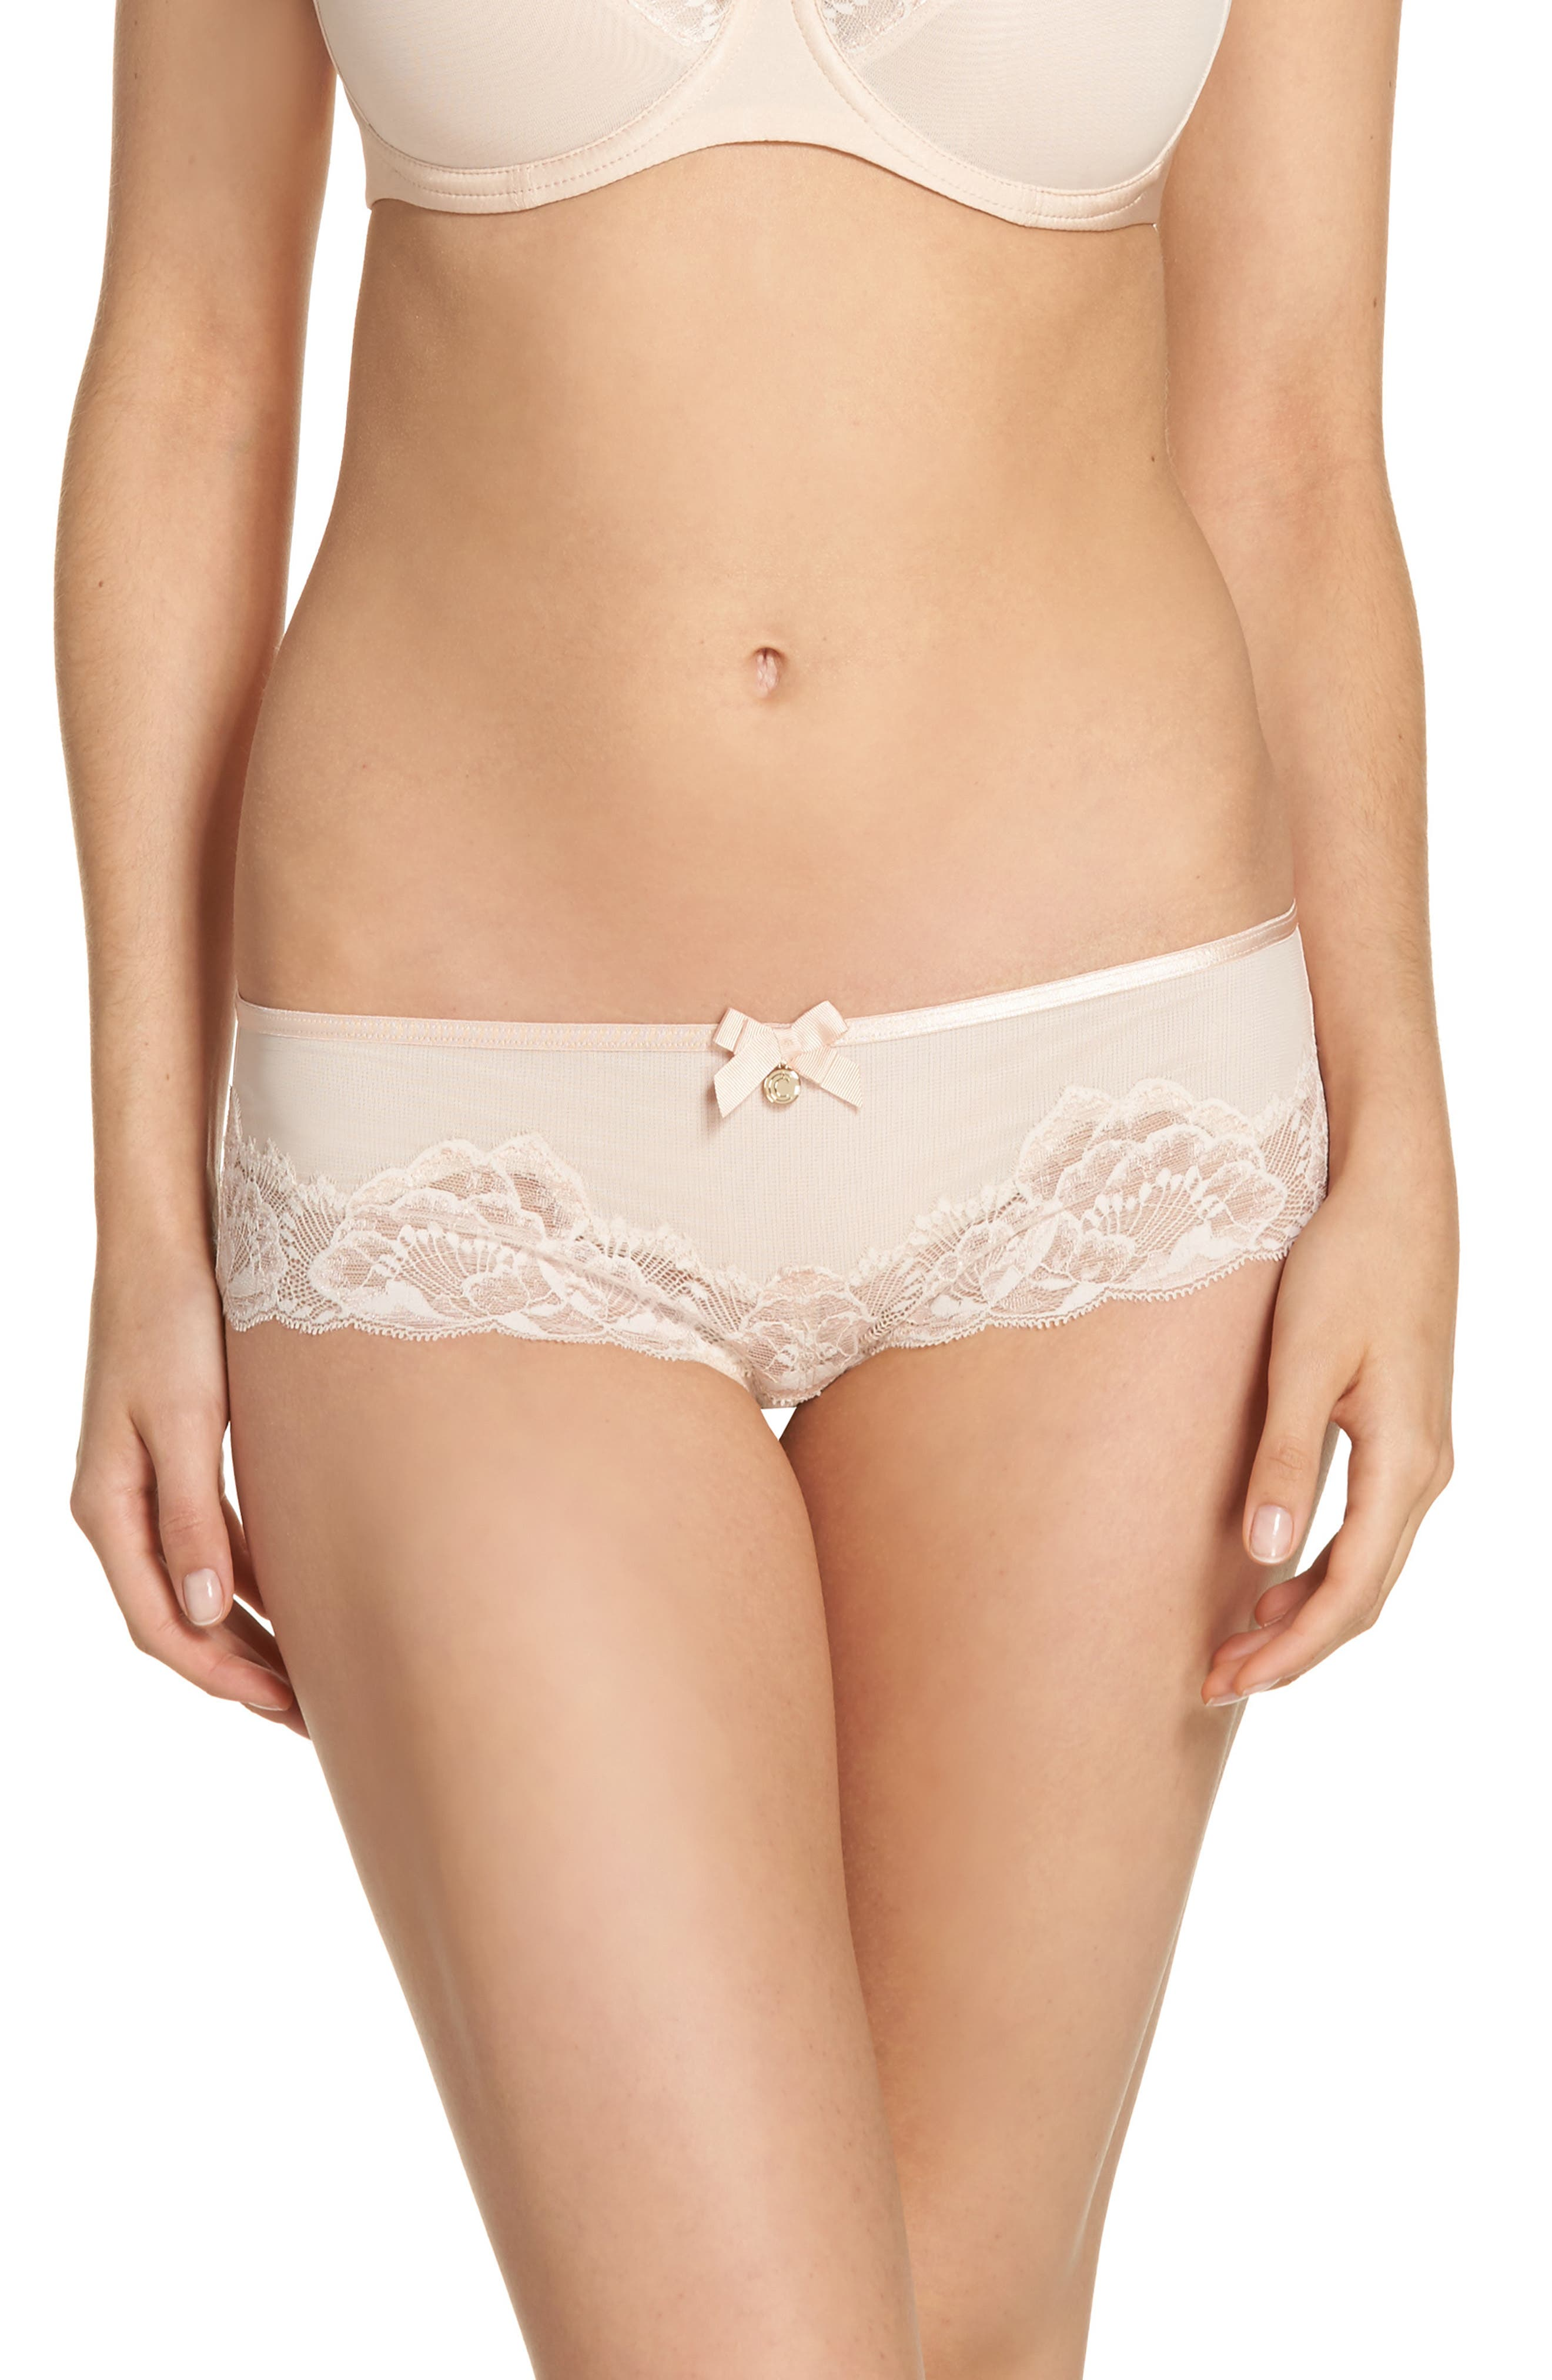 Orangerie Hipster Panties,                             Main thumbnail 1, color,                             Skin Rose